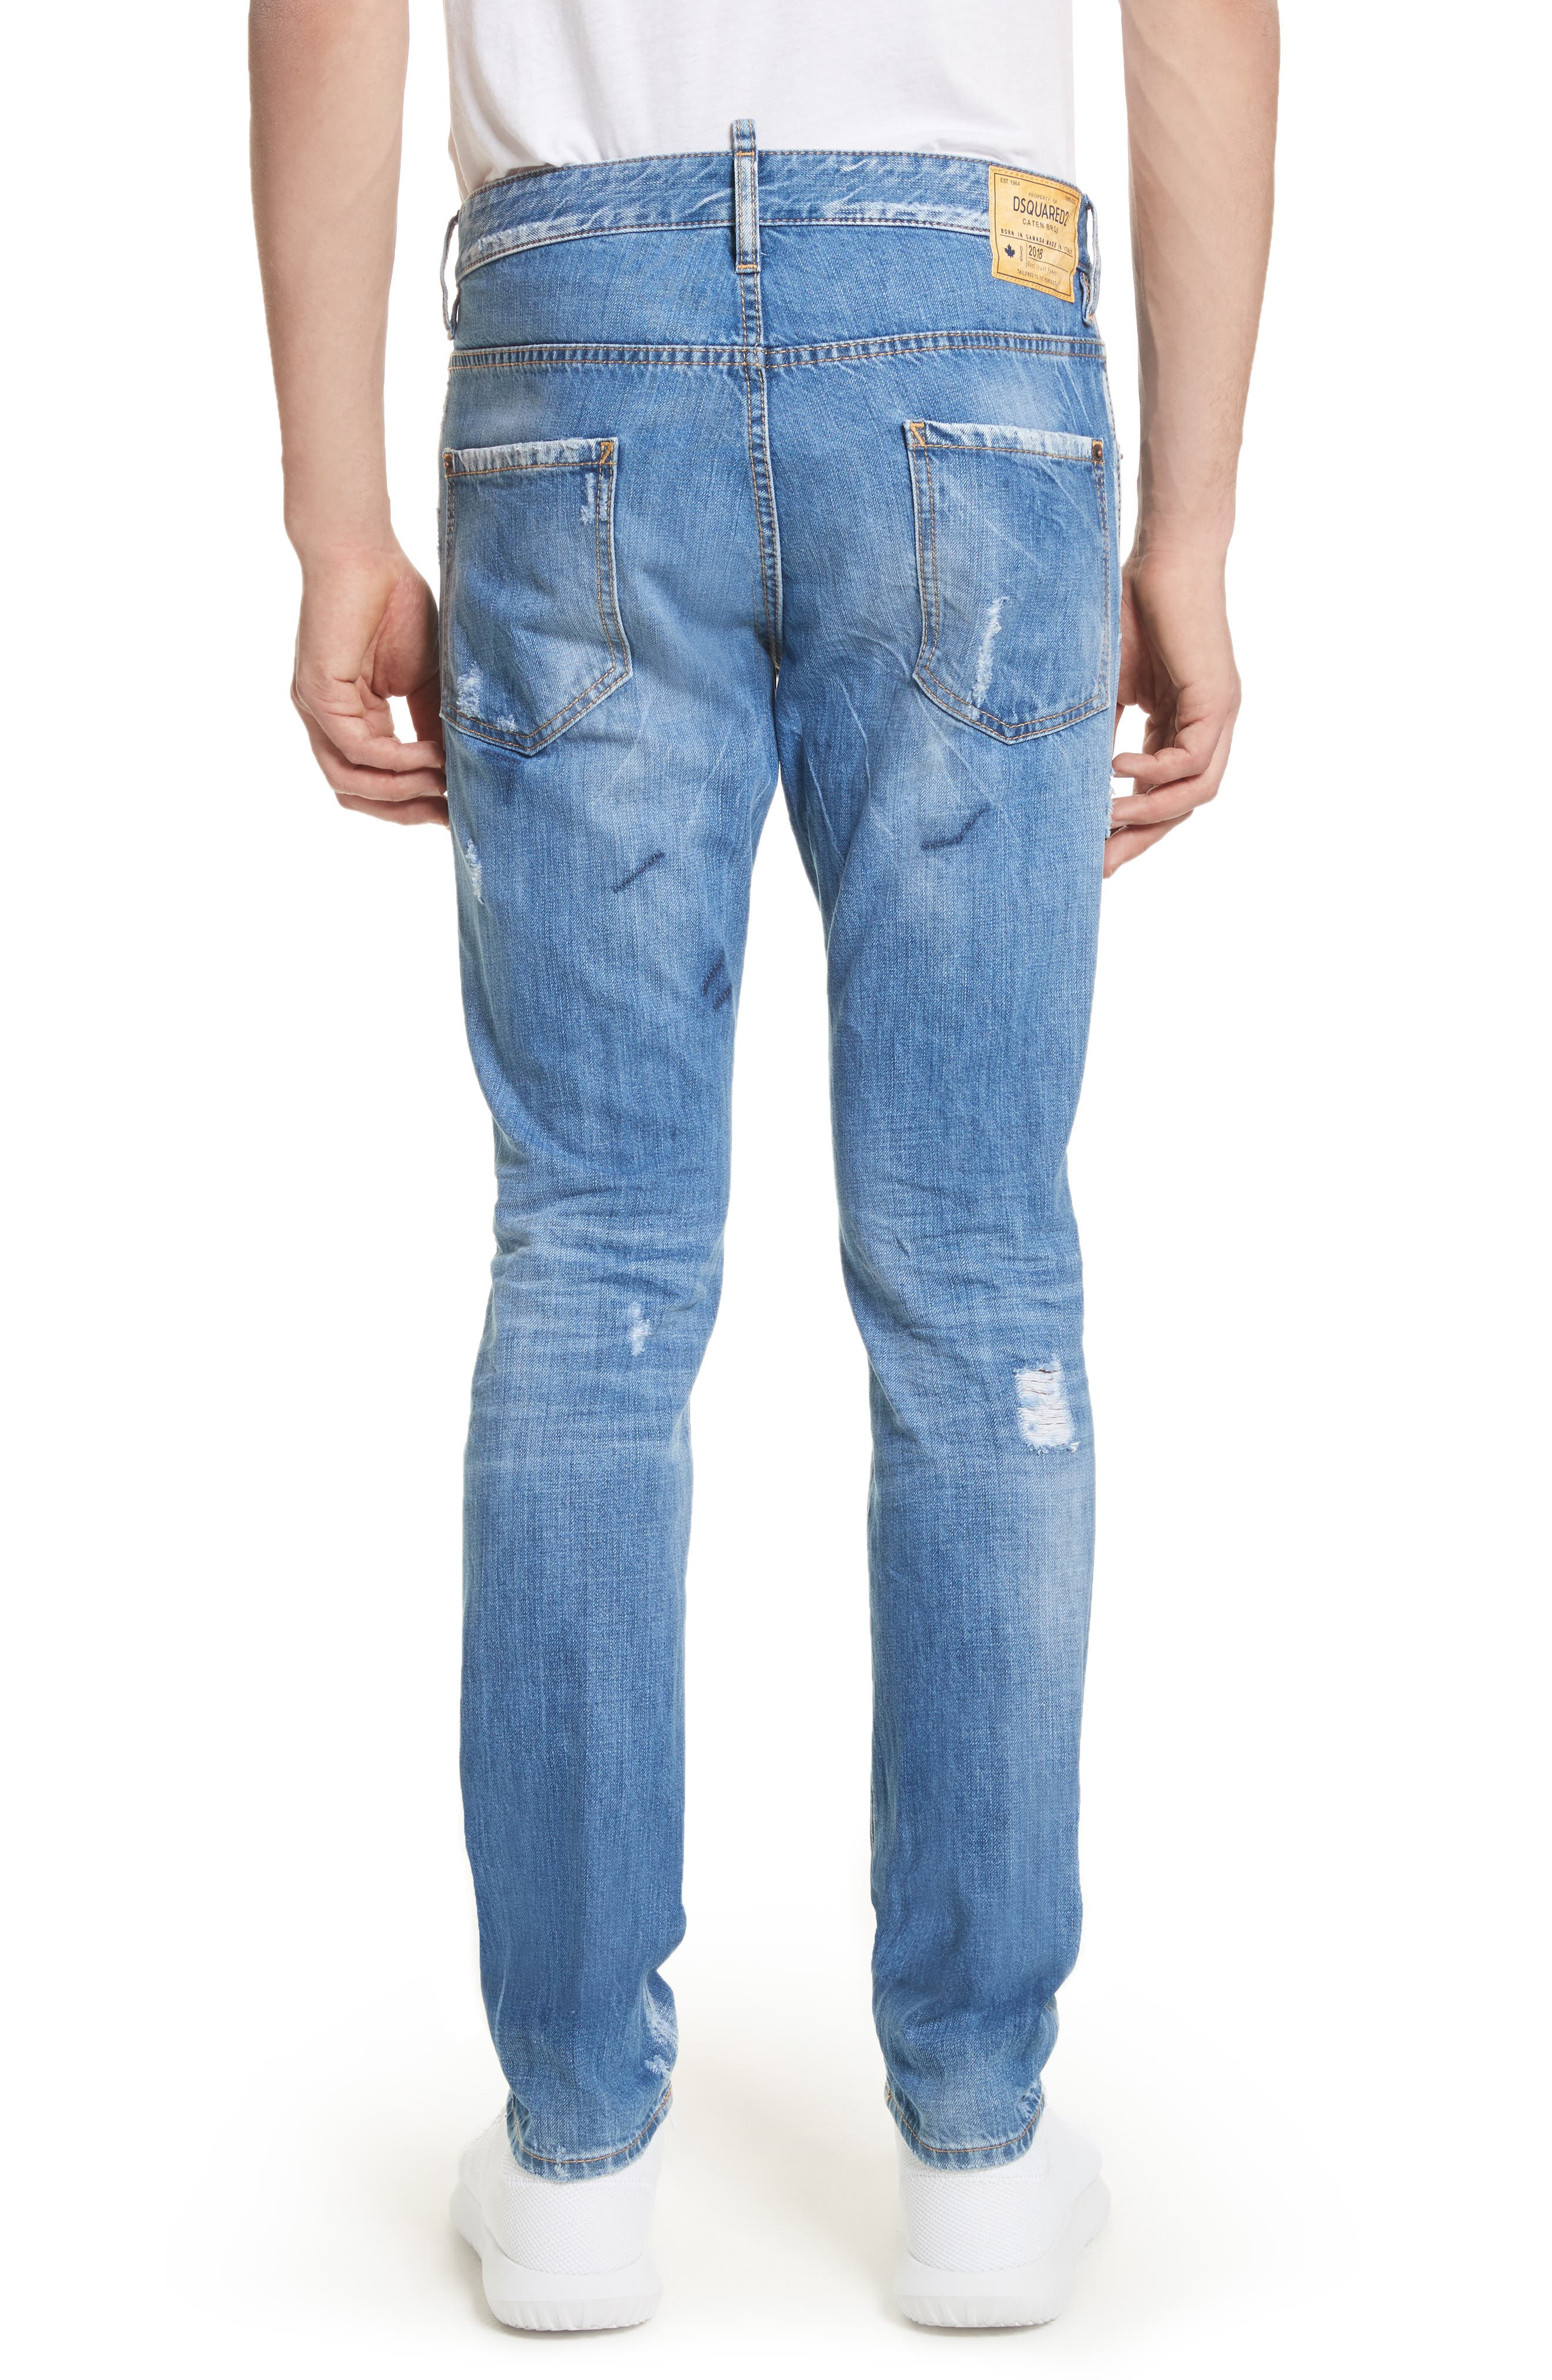 Cool Guy Skinny Fit Jeans,                             Alternate thumbnail 2, color,                             414